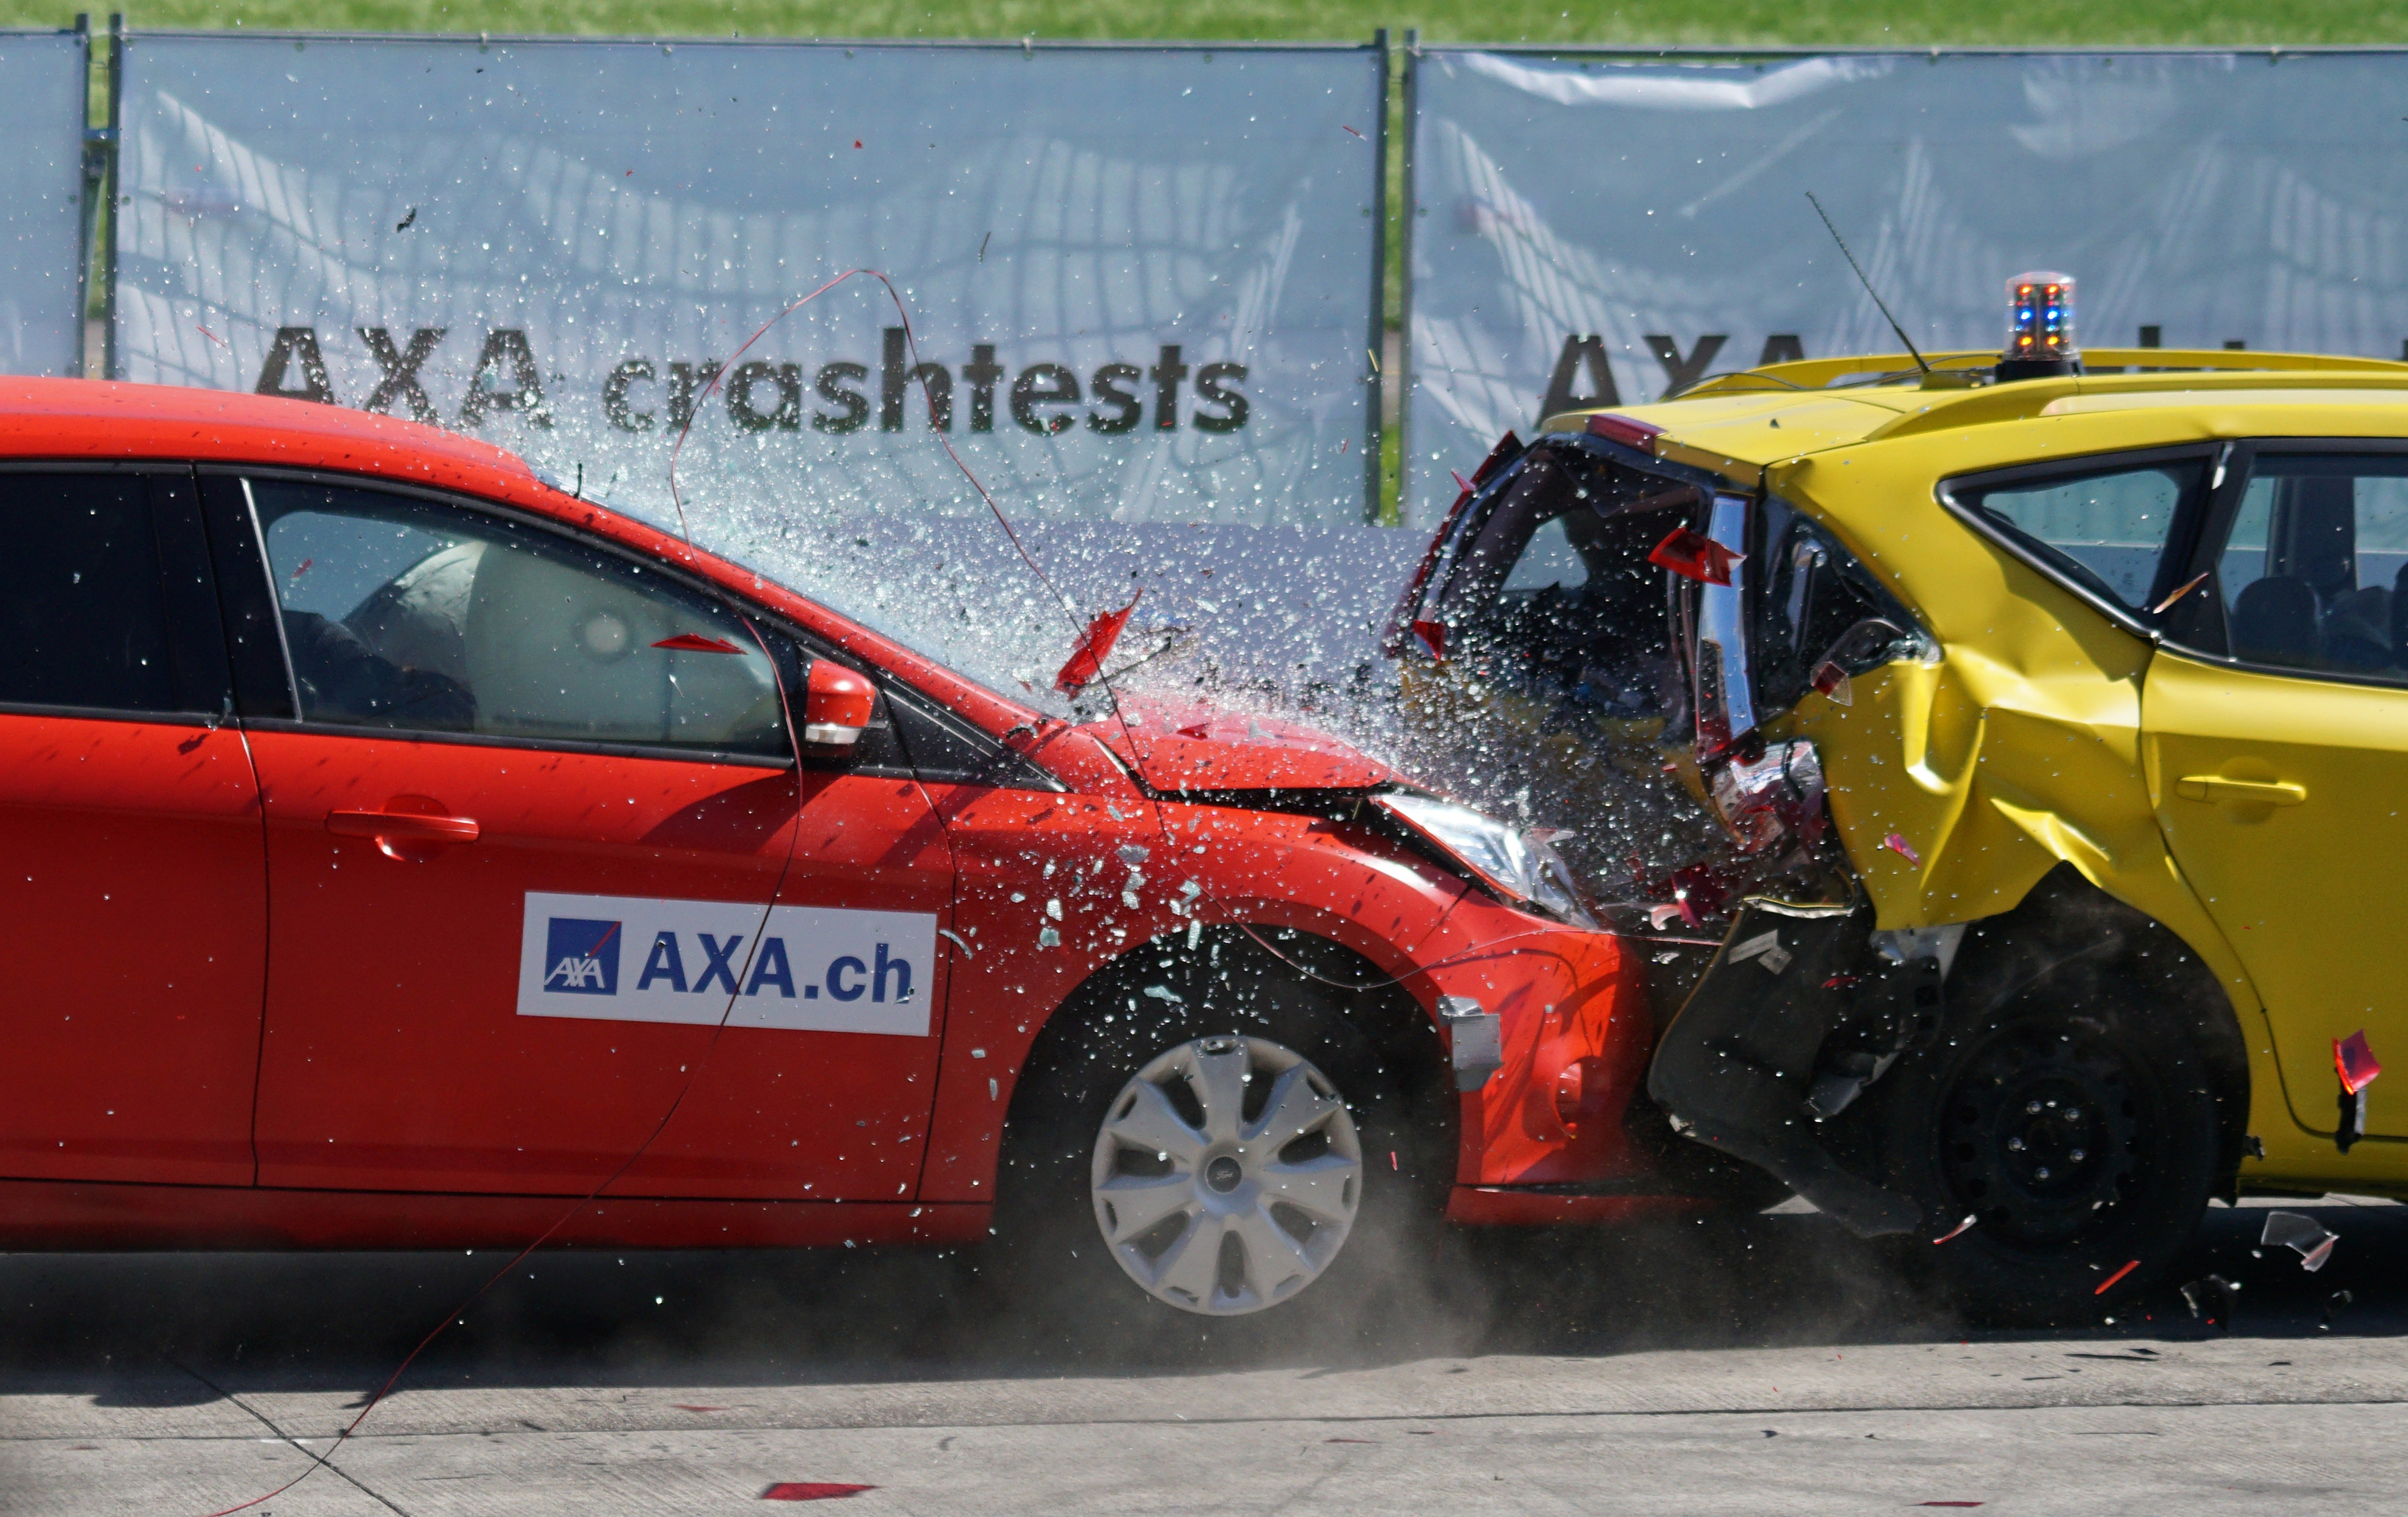 Pictured - A red and yellow hatchback Axa crash tests   Source: Pexels